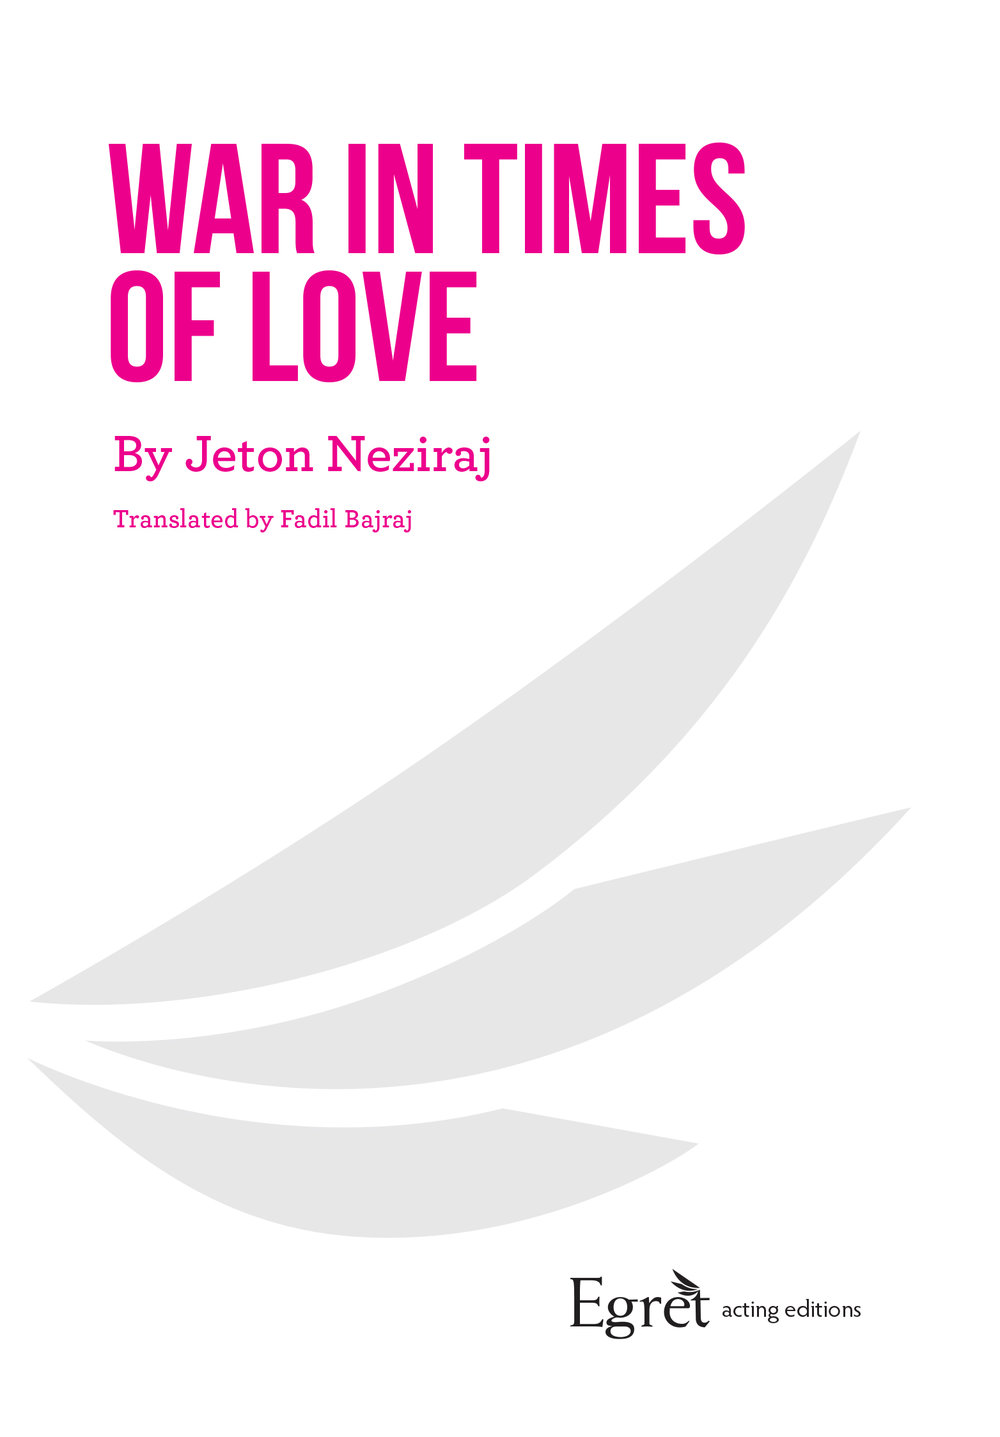 war in times of love cover web.jpg